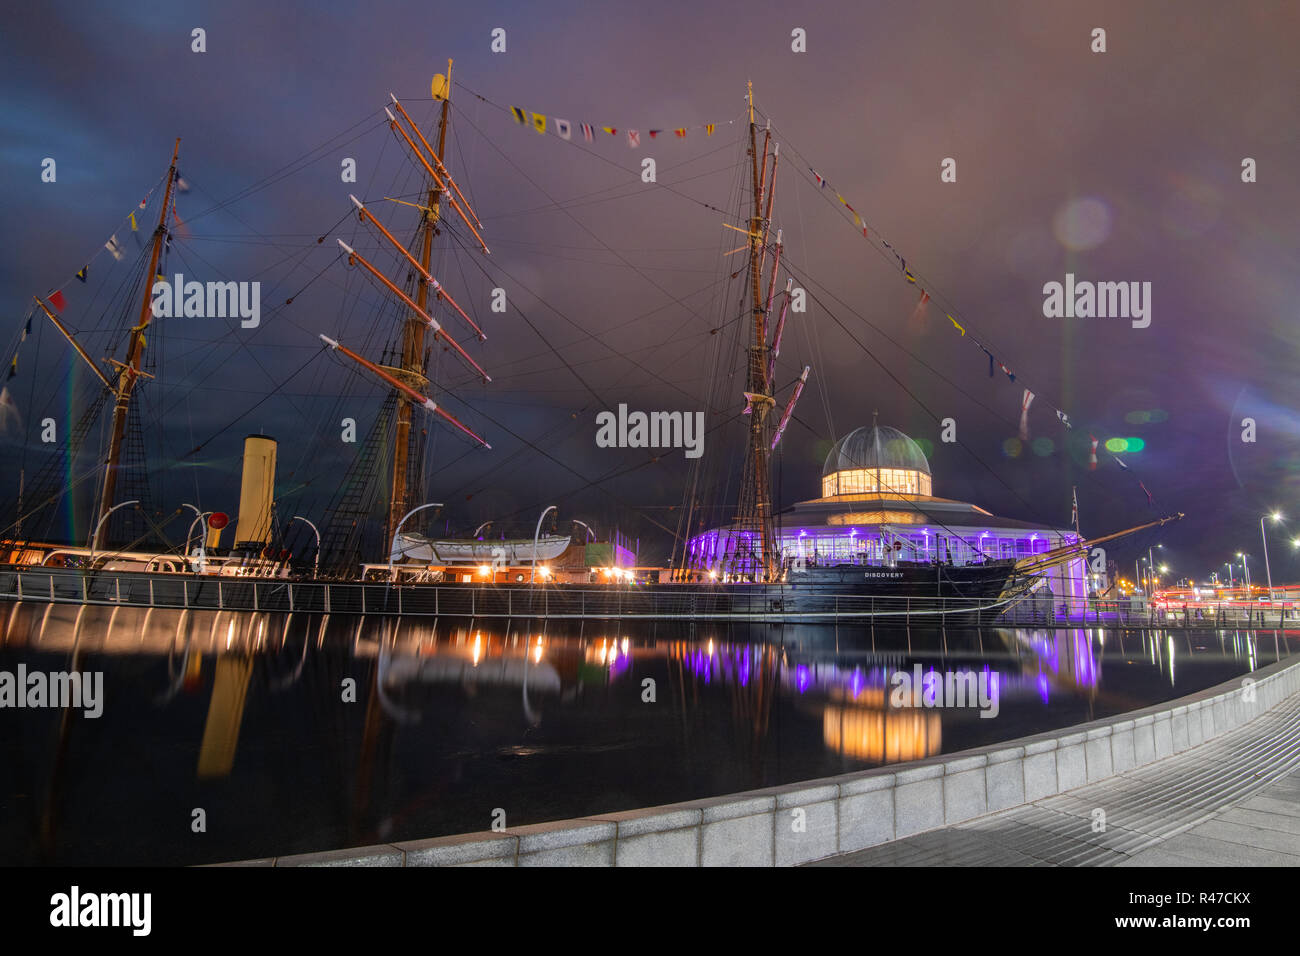 Dundee Discovery Centre at night - Stock Image